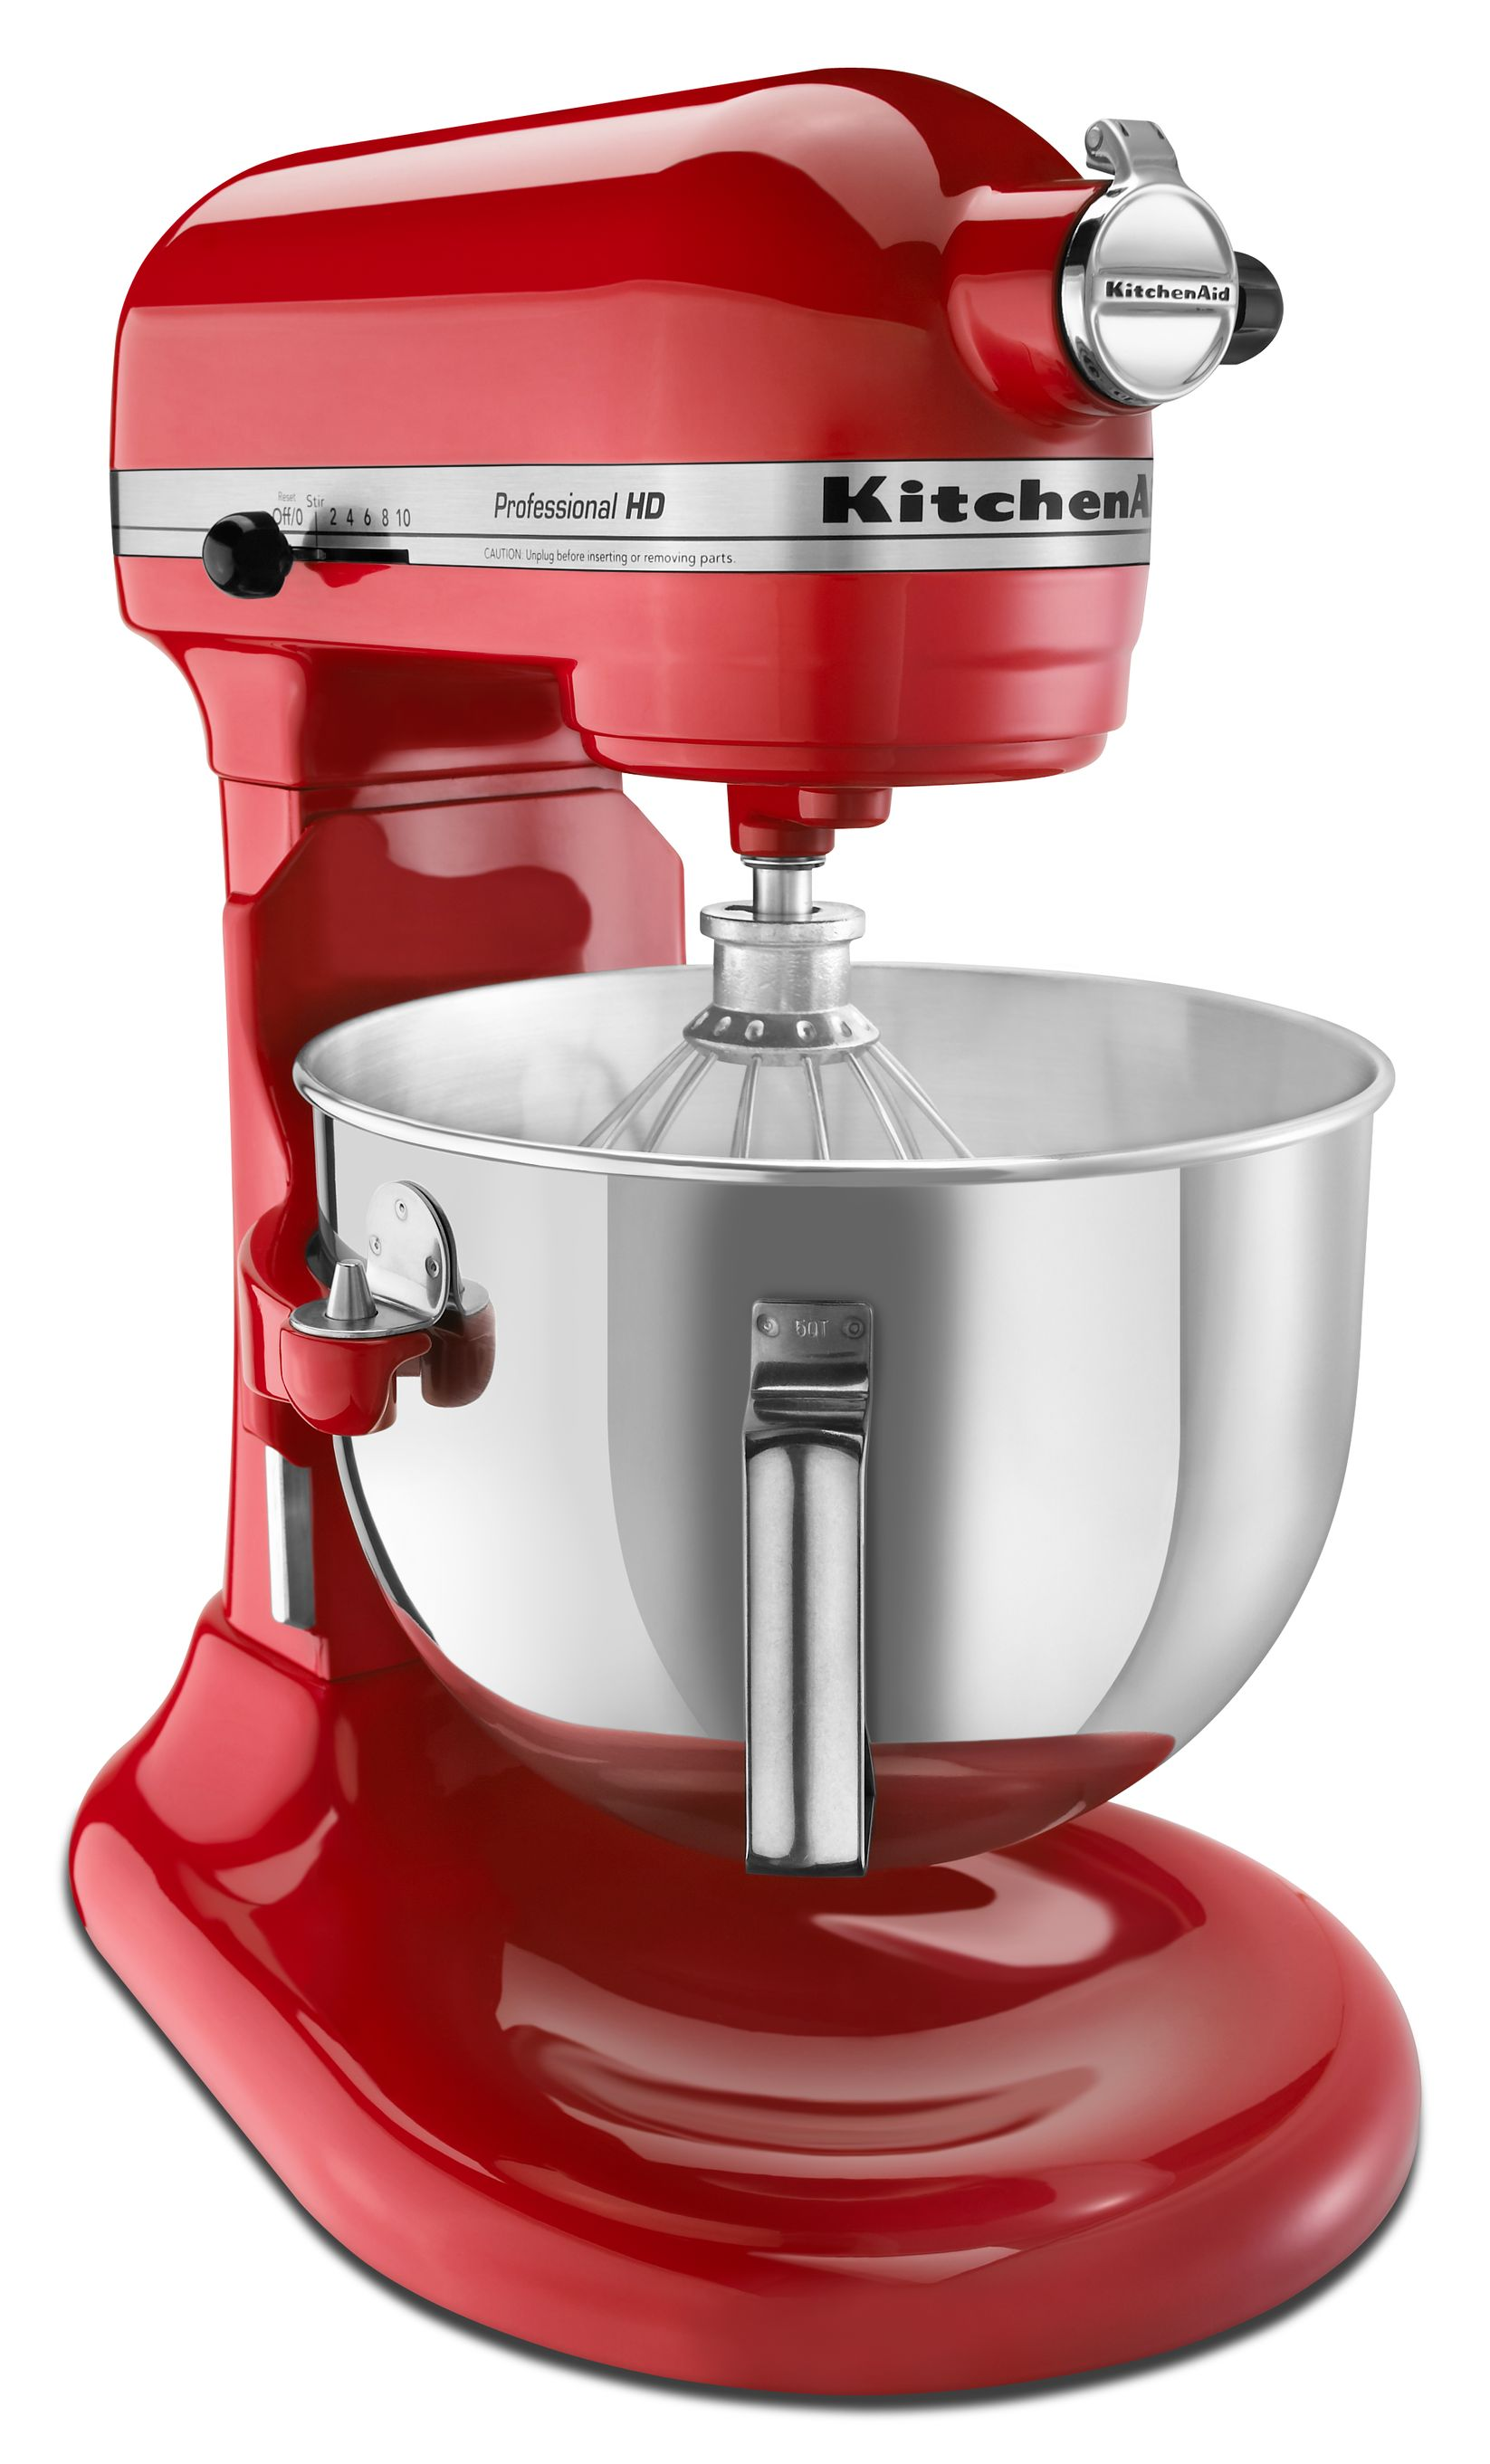 KitchenAid-Refurbished-Professional-HD-Series-Bowl-Lift-Stand-Mixer-RKG25H0X thumbnail 7